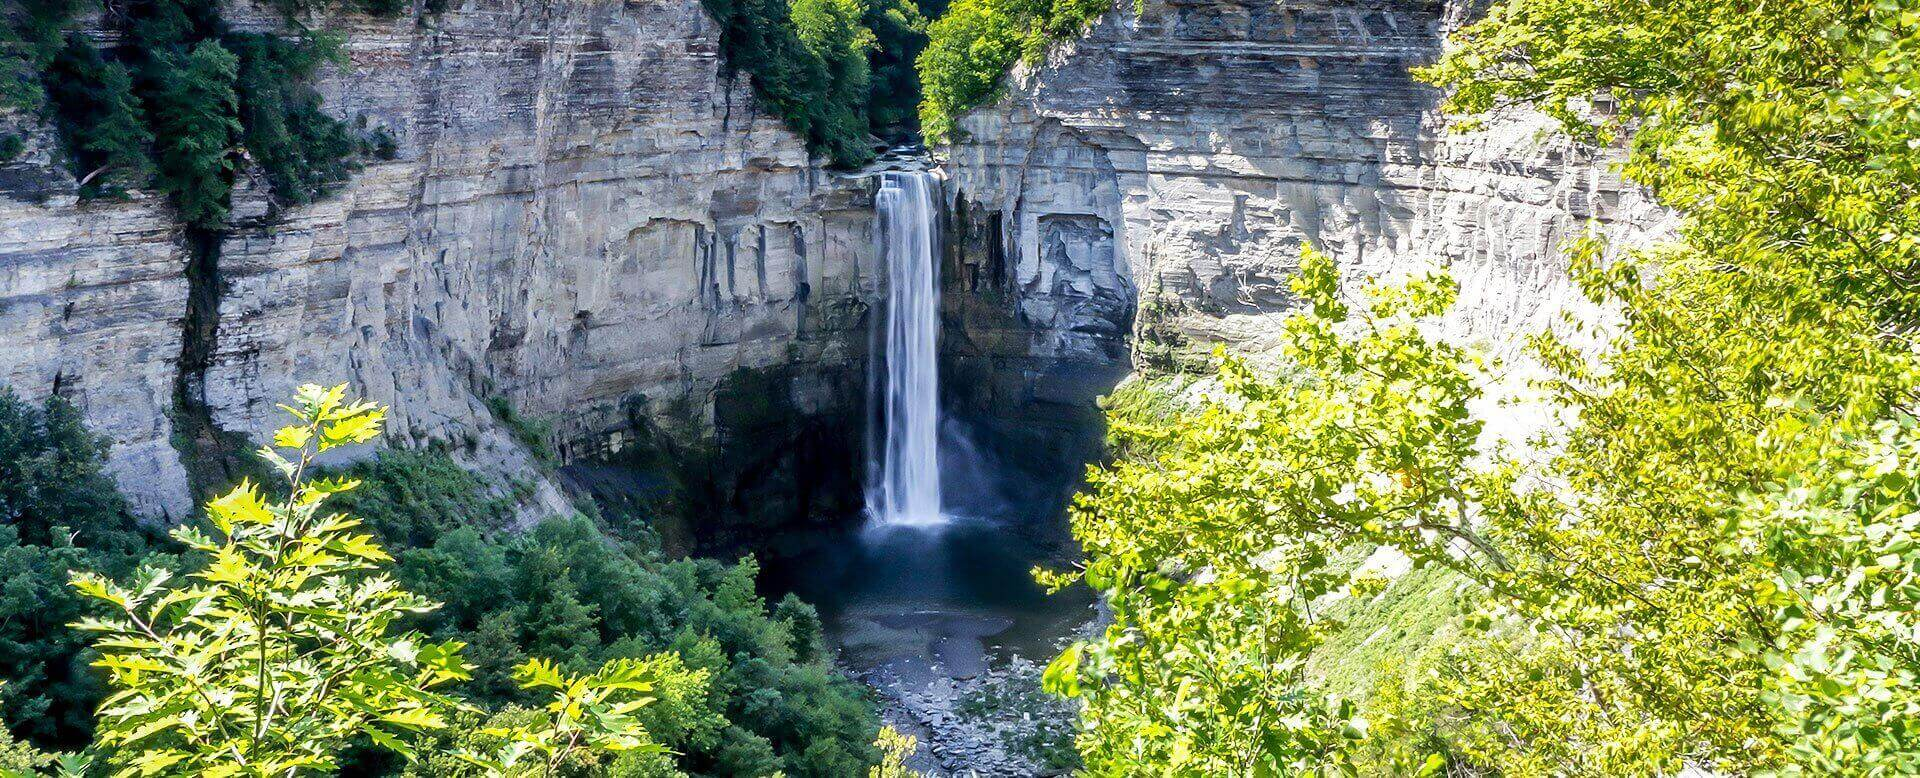 The Inn at Taughannock Falls